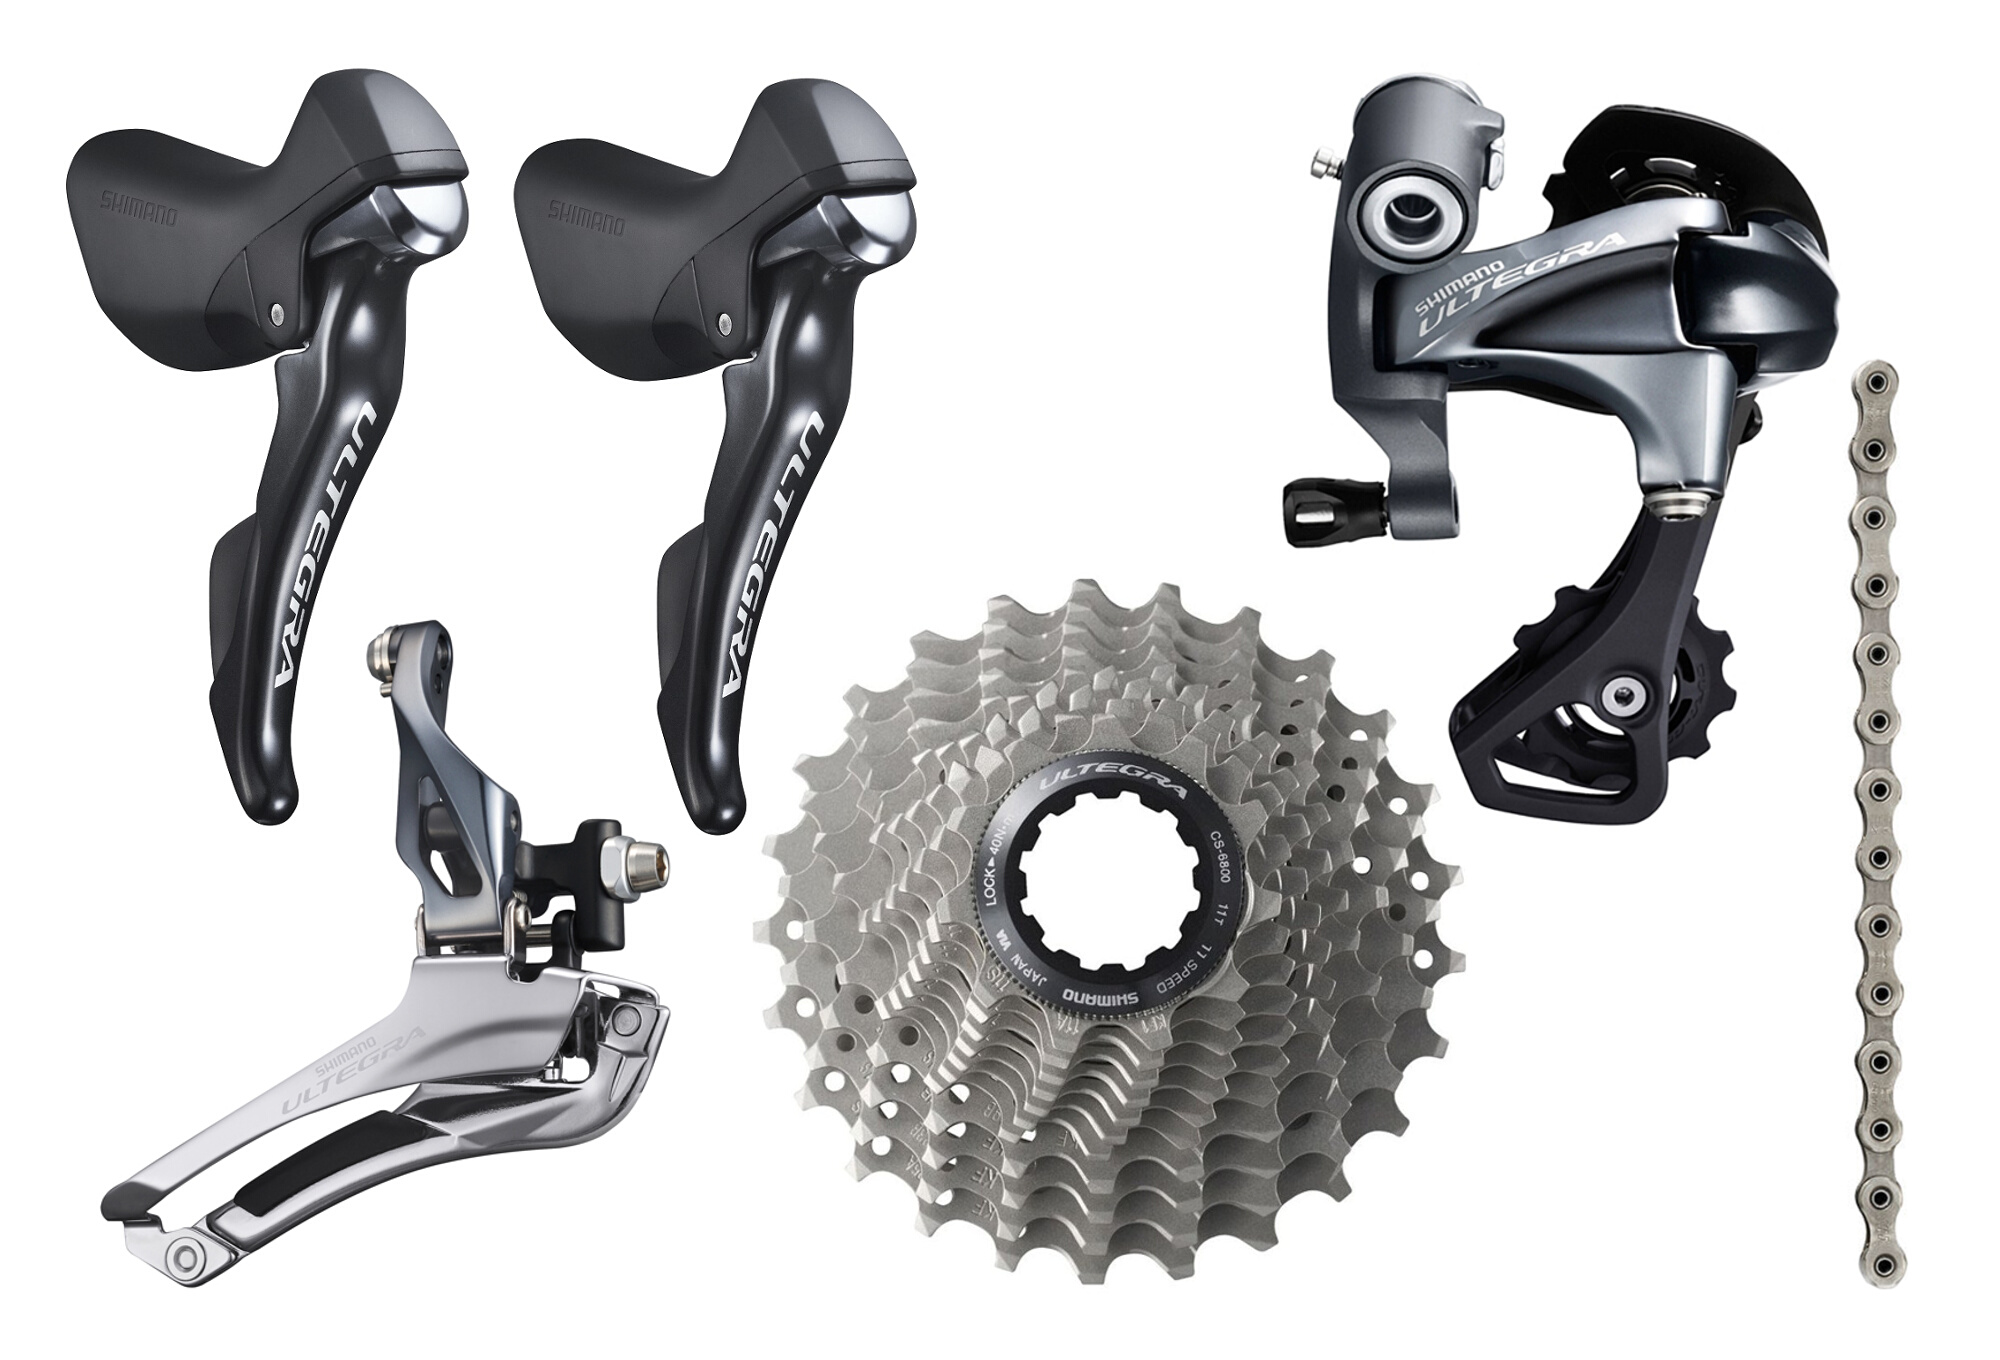 d0bf20e1d9d Shimano Ultegra Mini Groupset (without crankset) 11s Black | Alltricks.fr